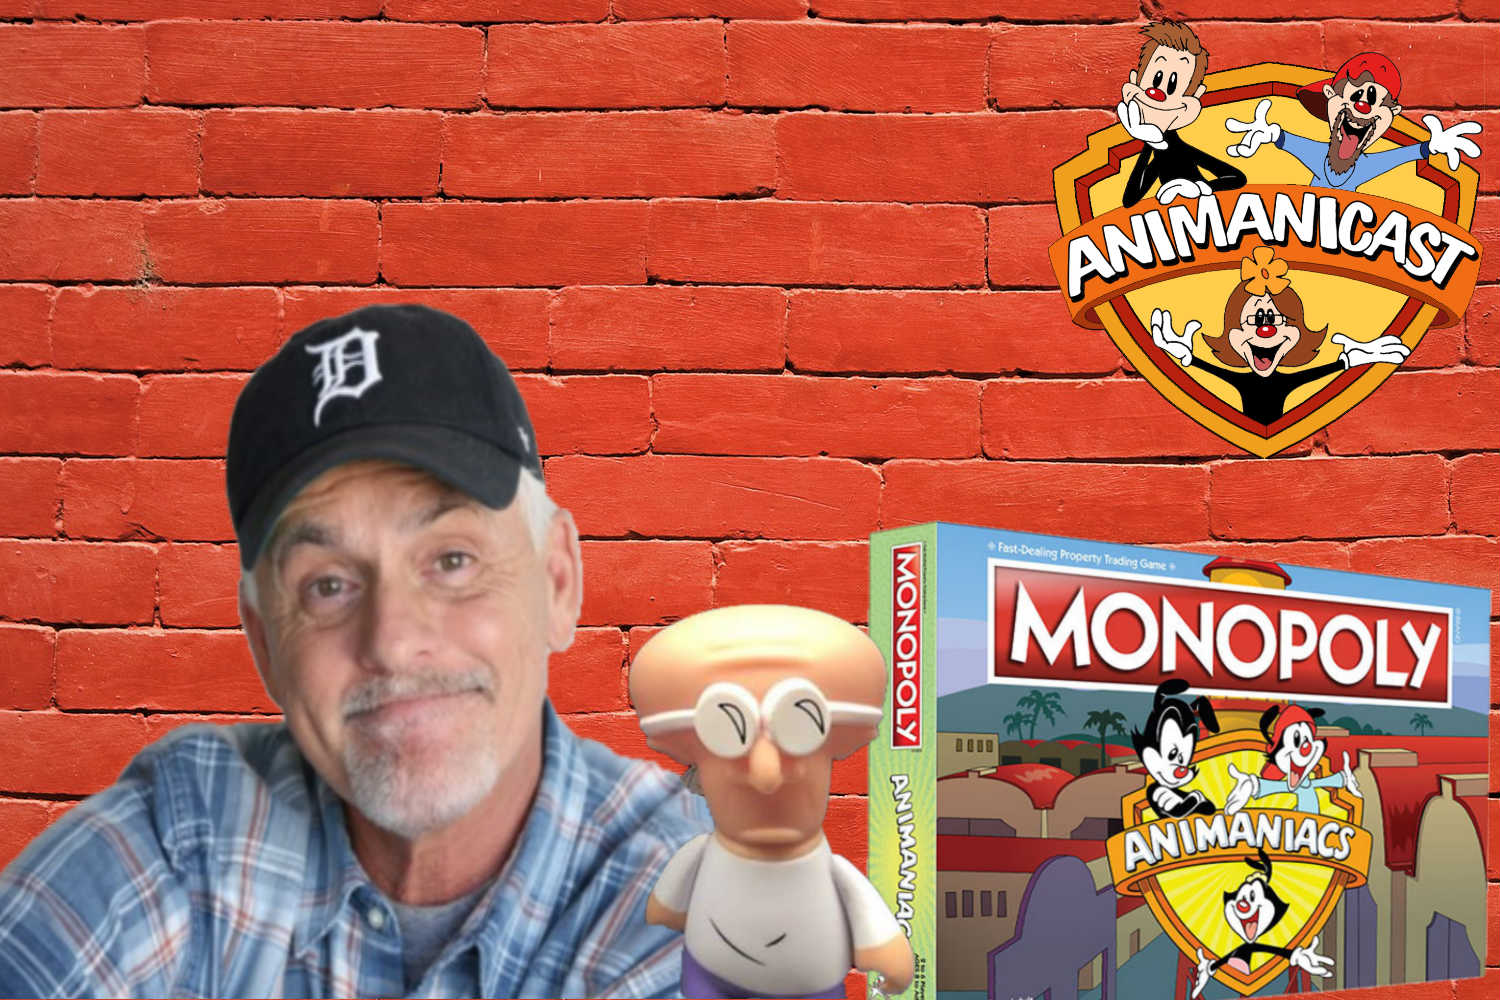 Animaniacs Merch and Rob Paulsen Discussion